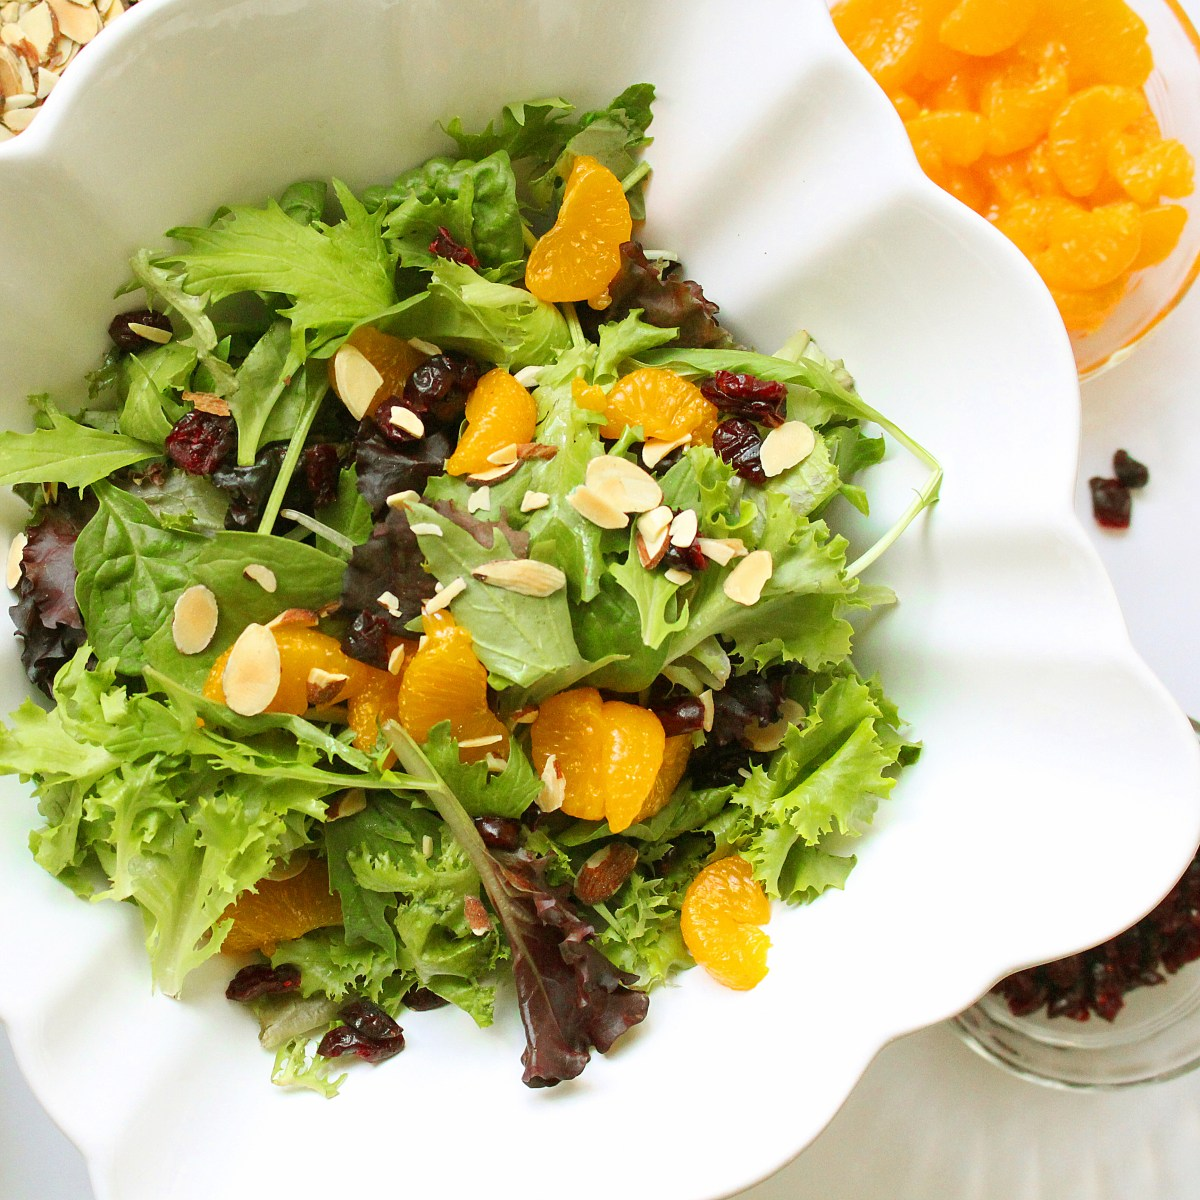 Cranberry Mandarin Orange Salad